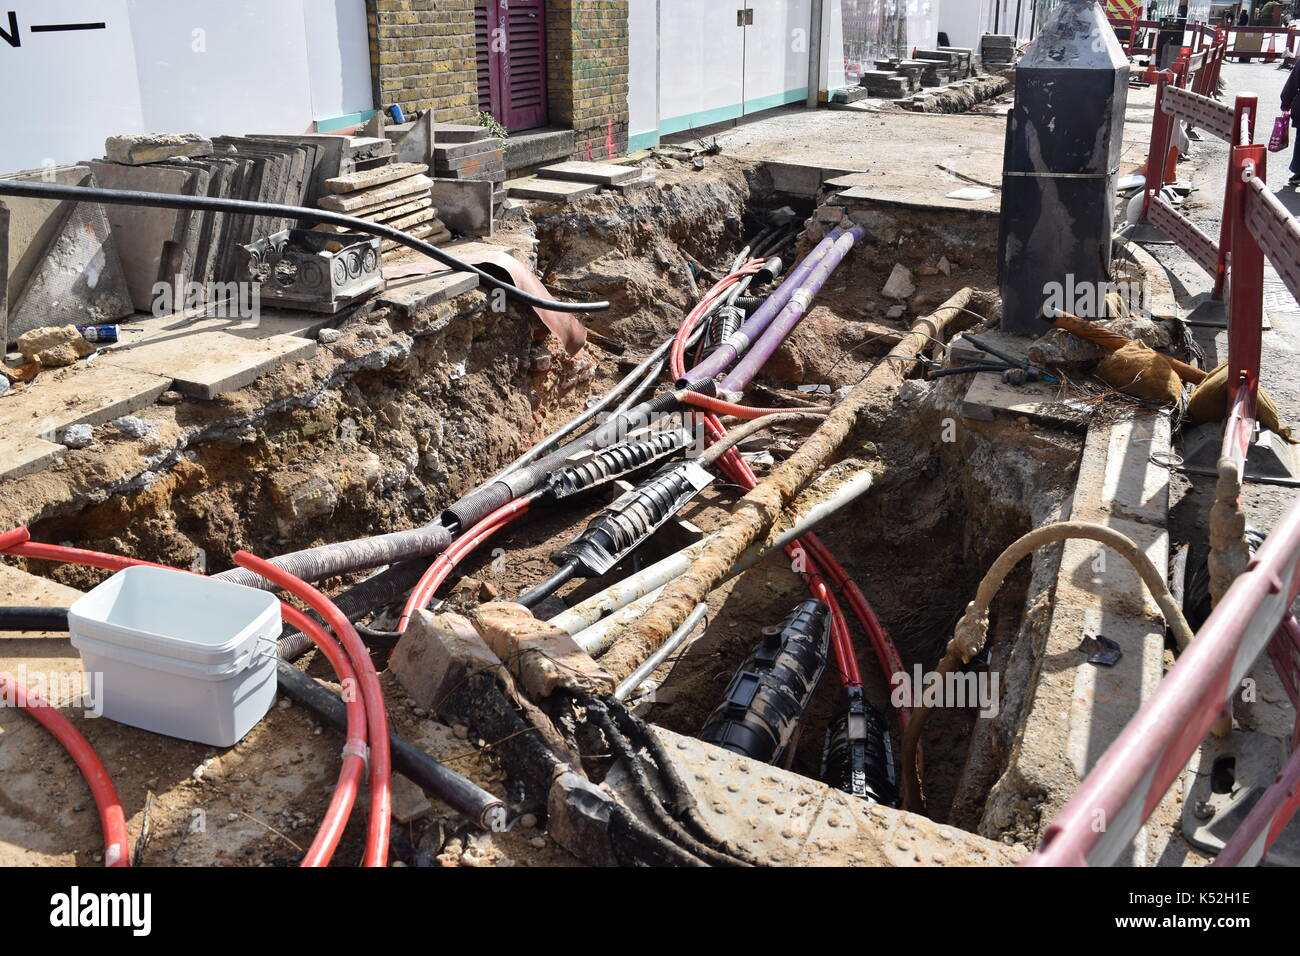 Underground wires Stock Photo: 158023866 - Alamy on